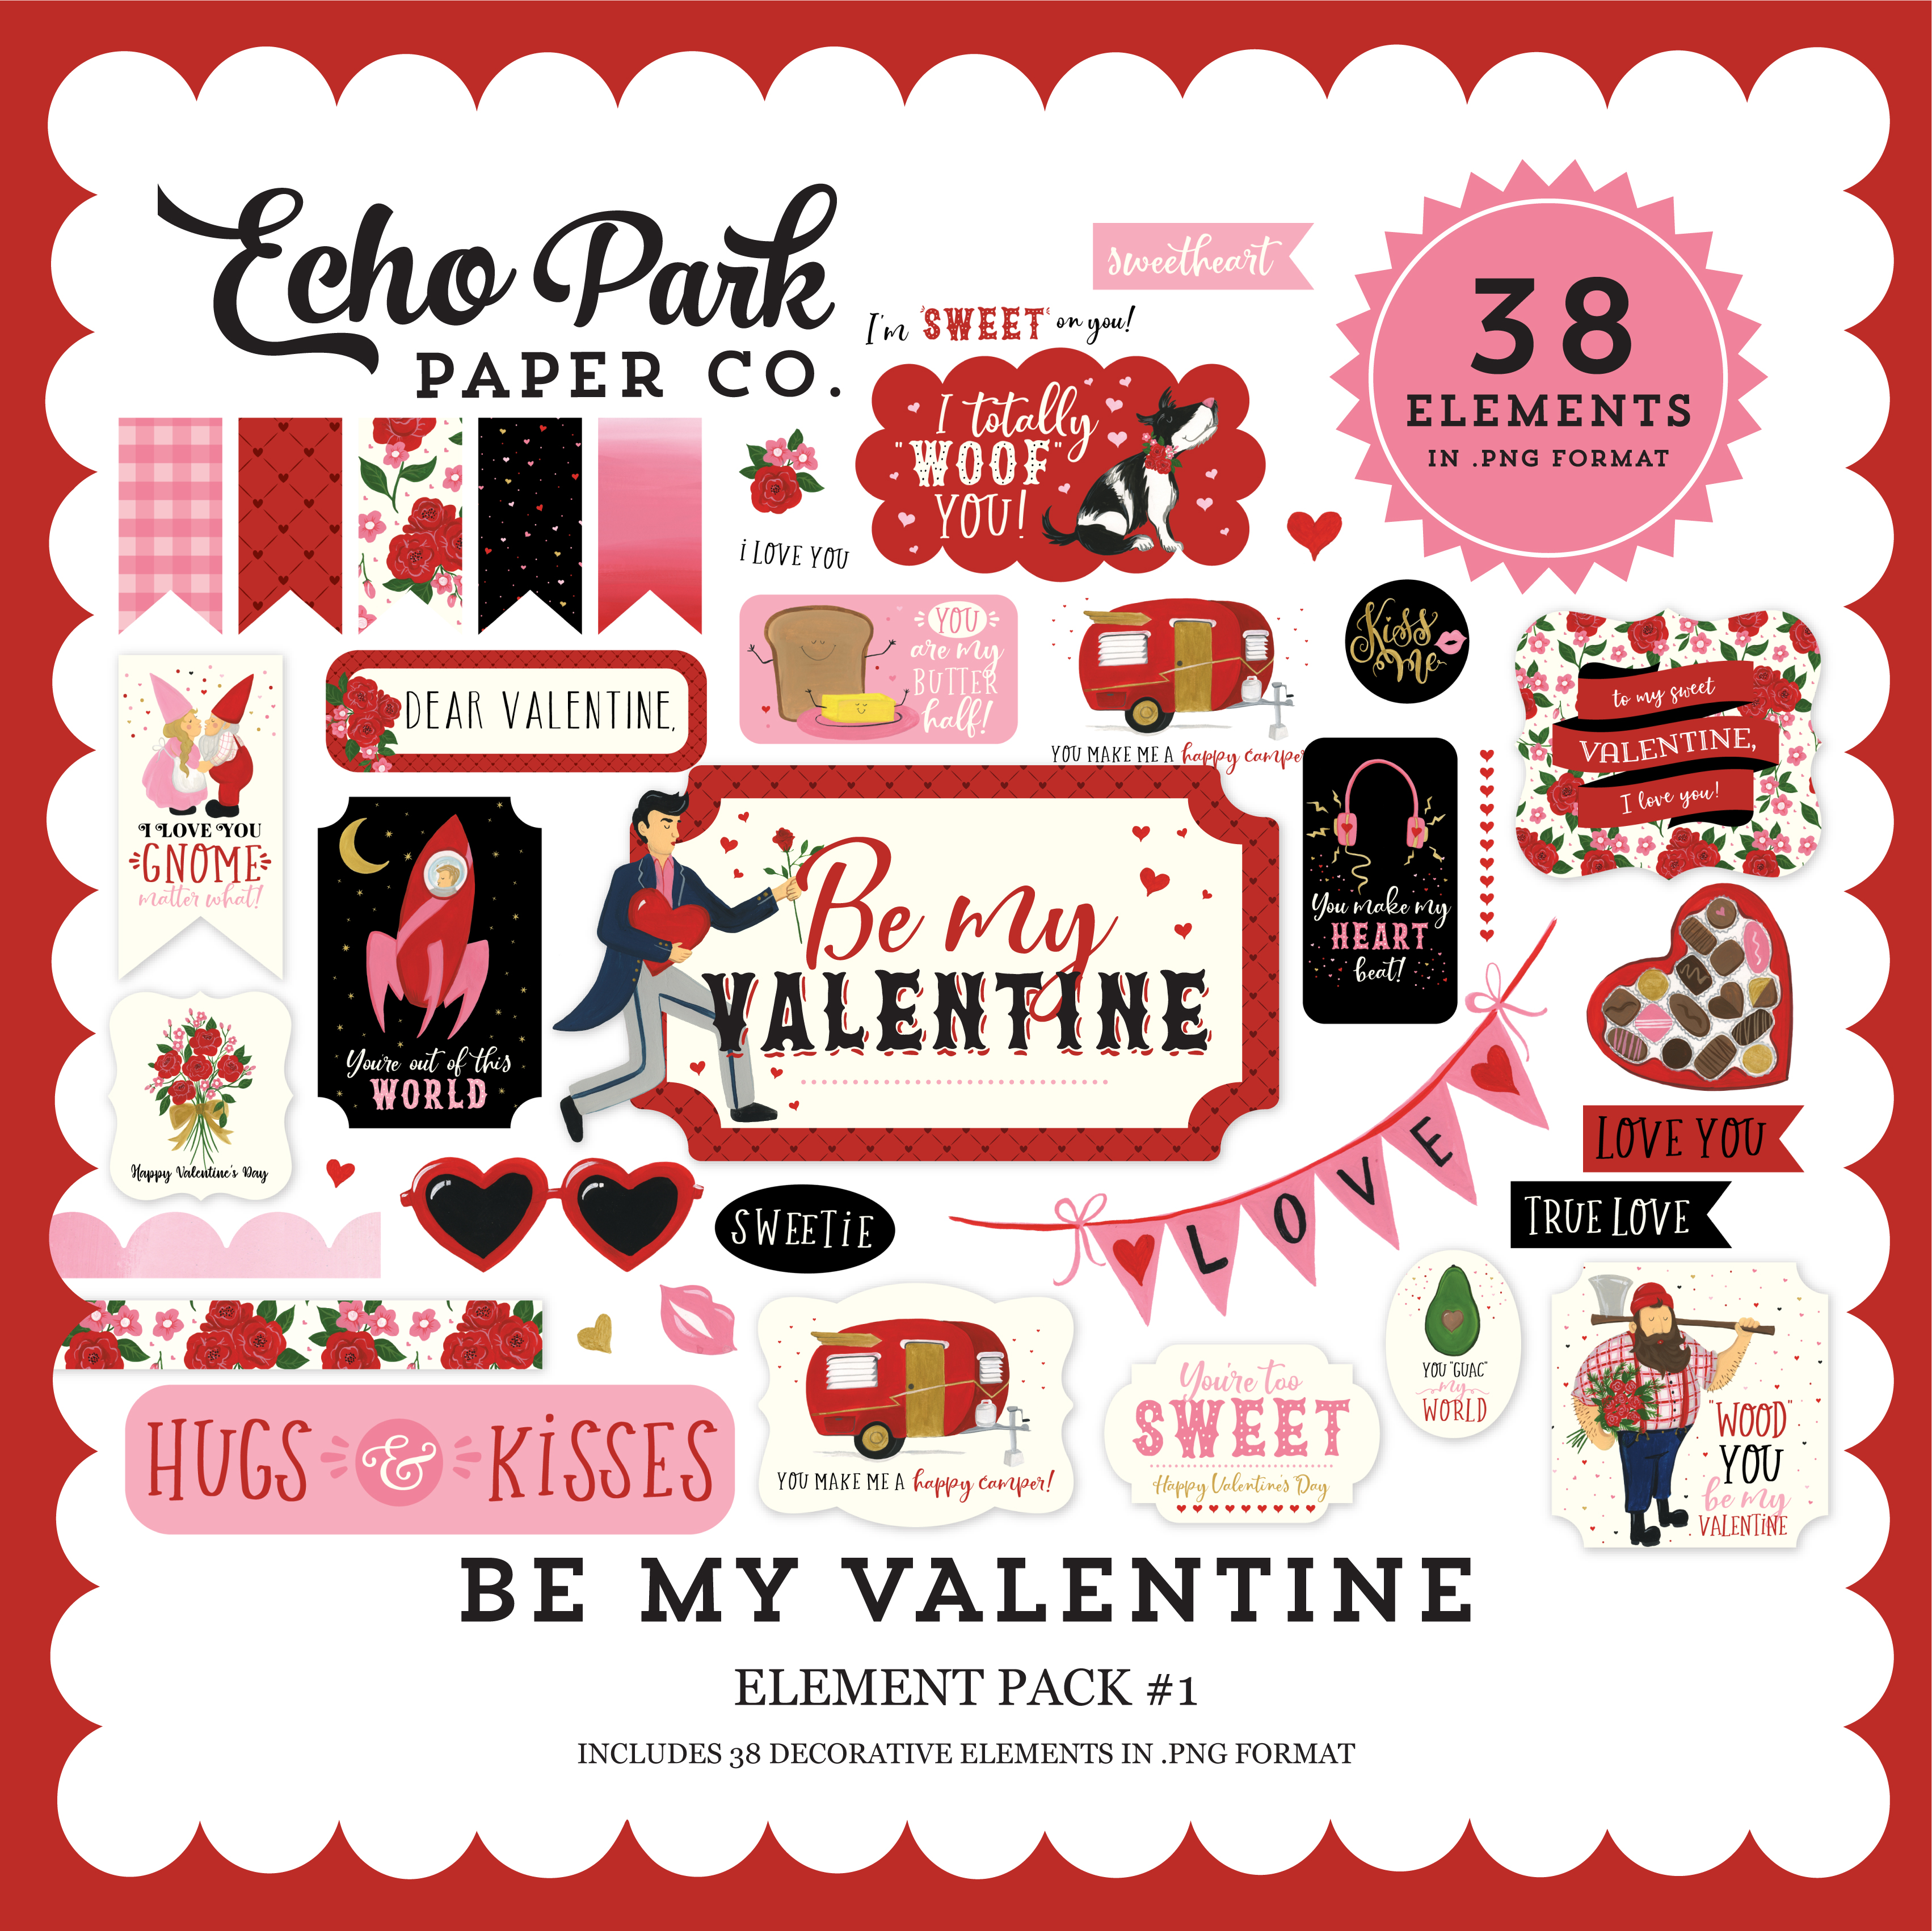 Be My Valentine Element Pack #1